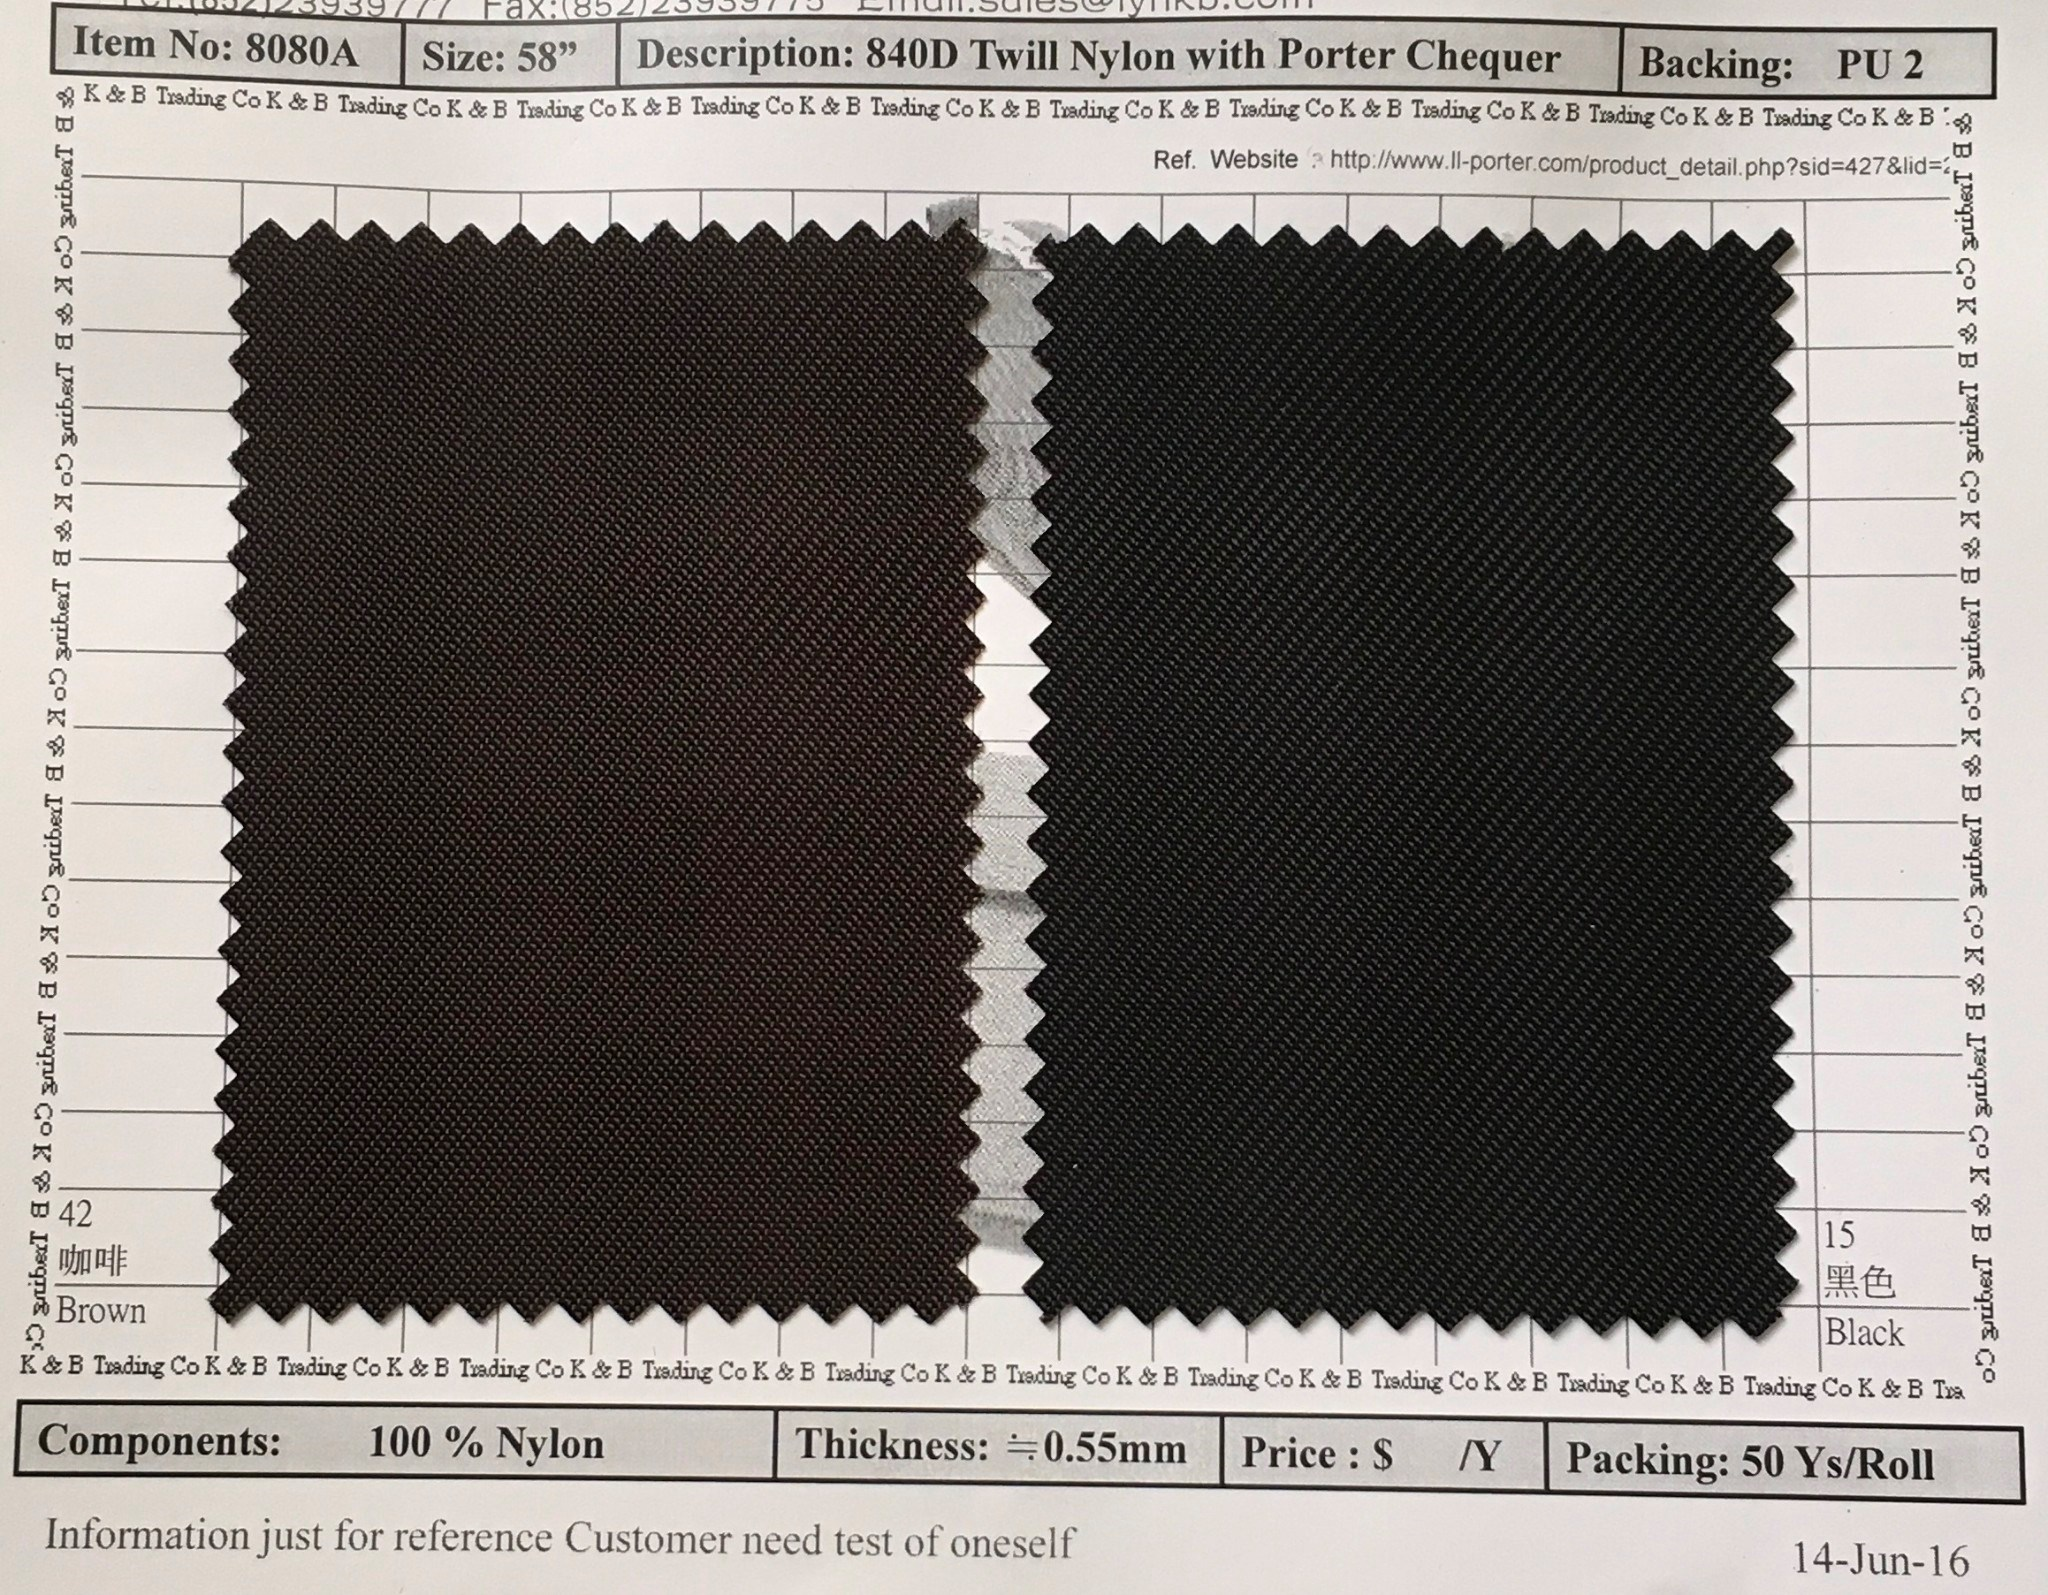 item 8080a 840 twill nylon with porter chequer backing pu2